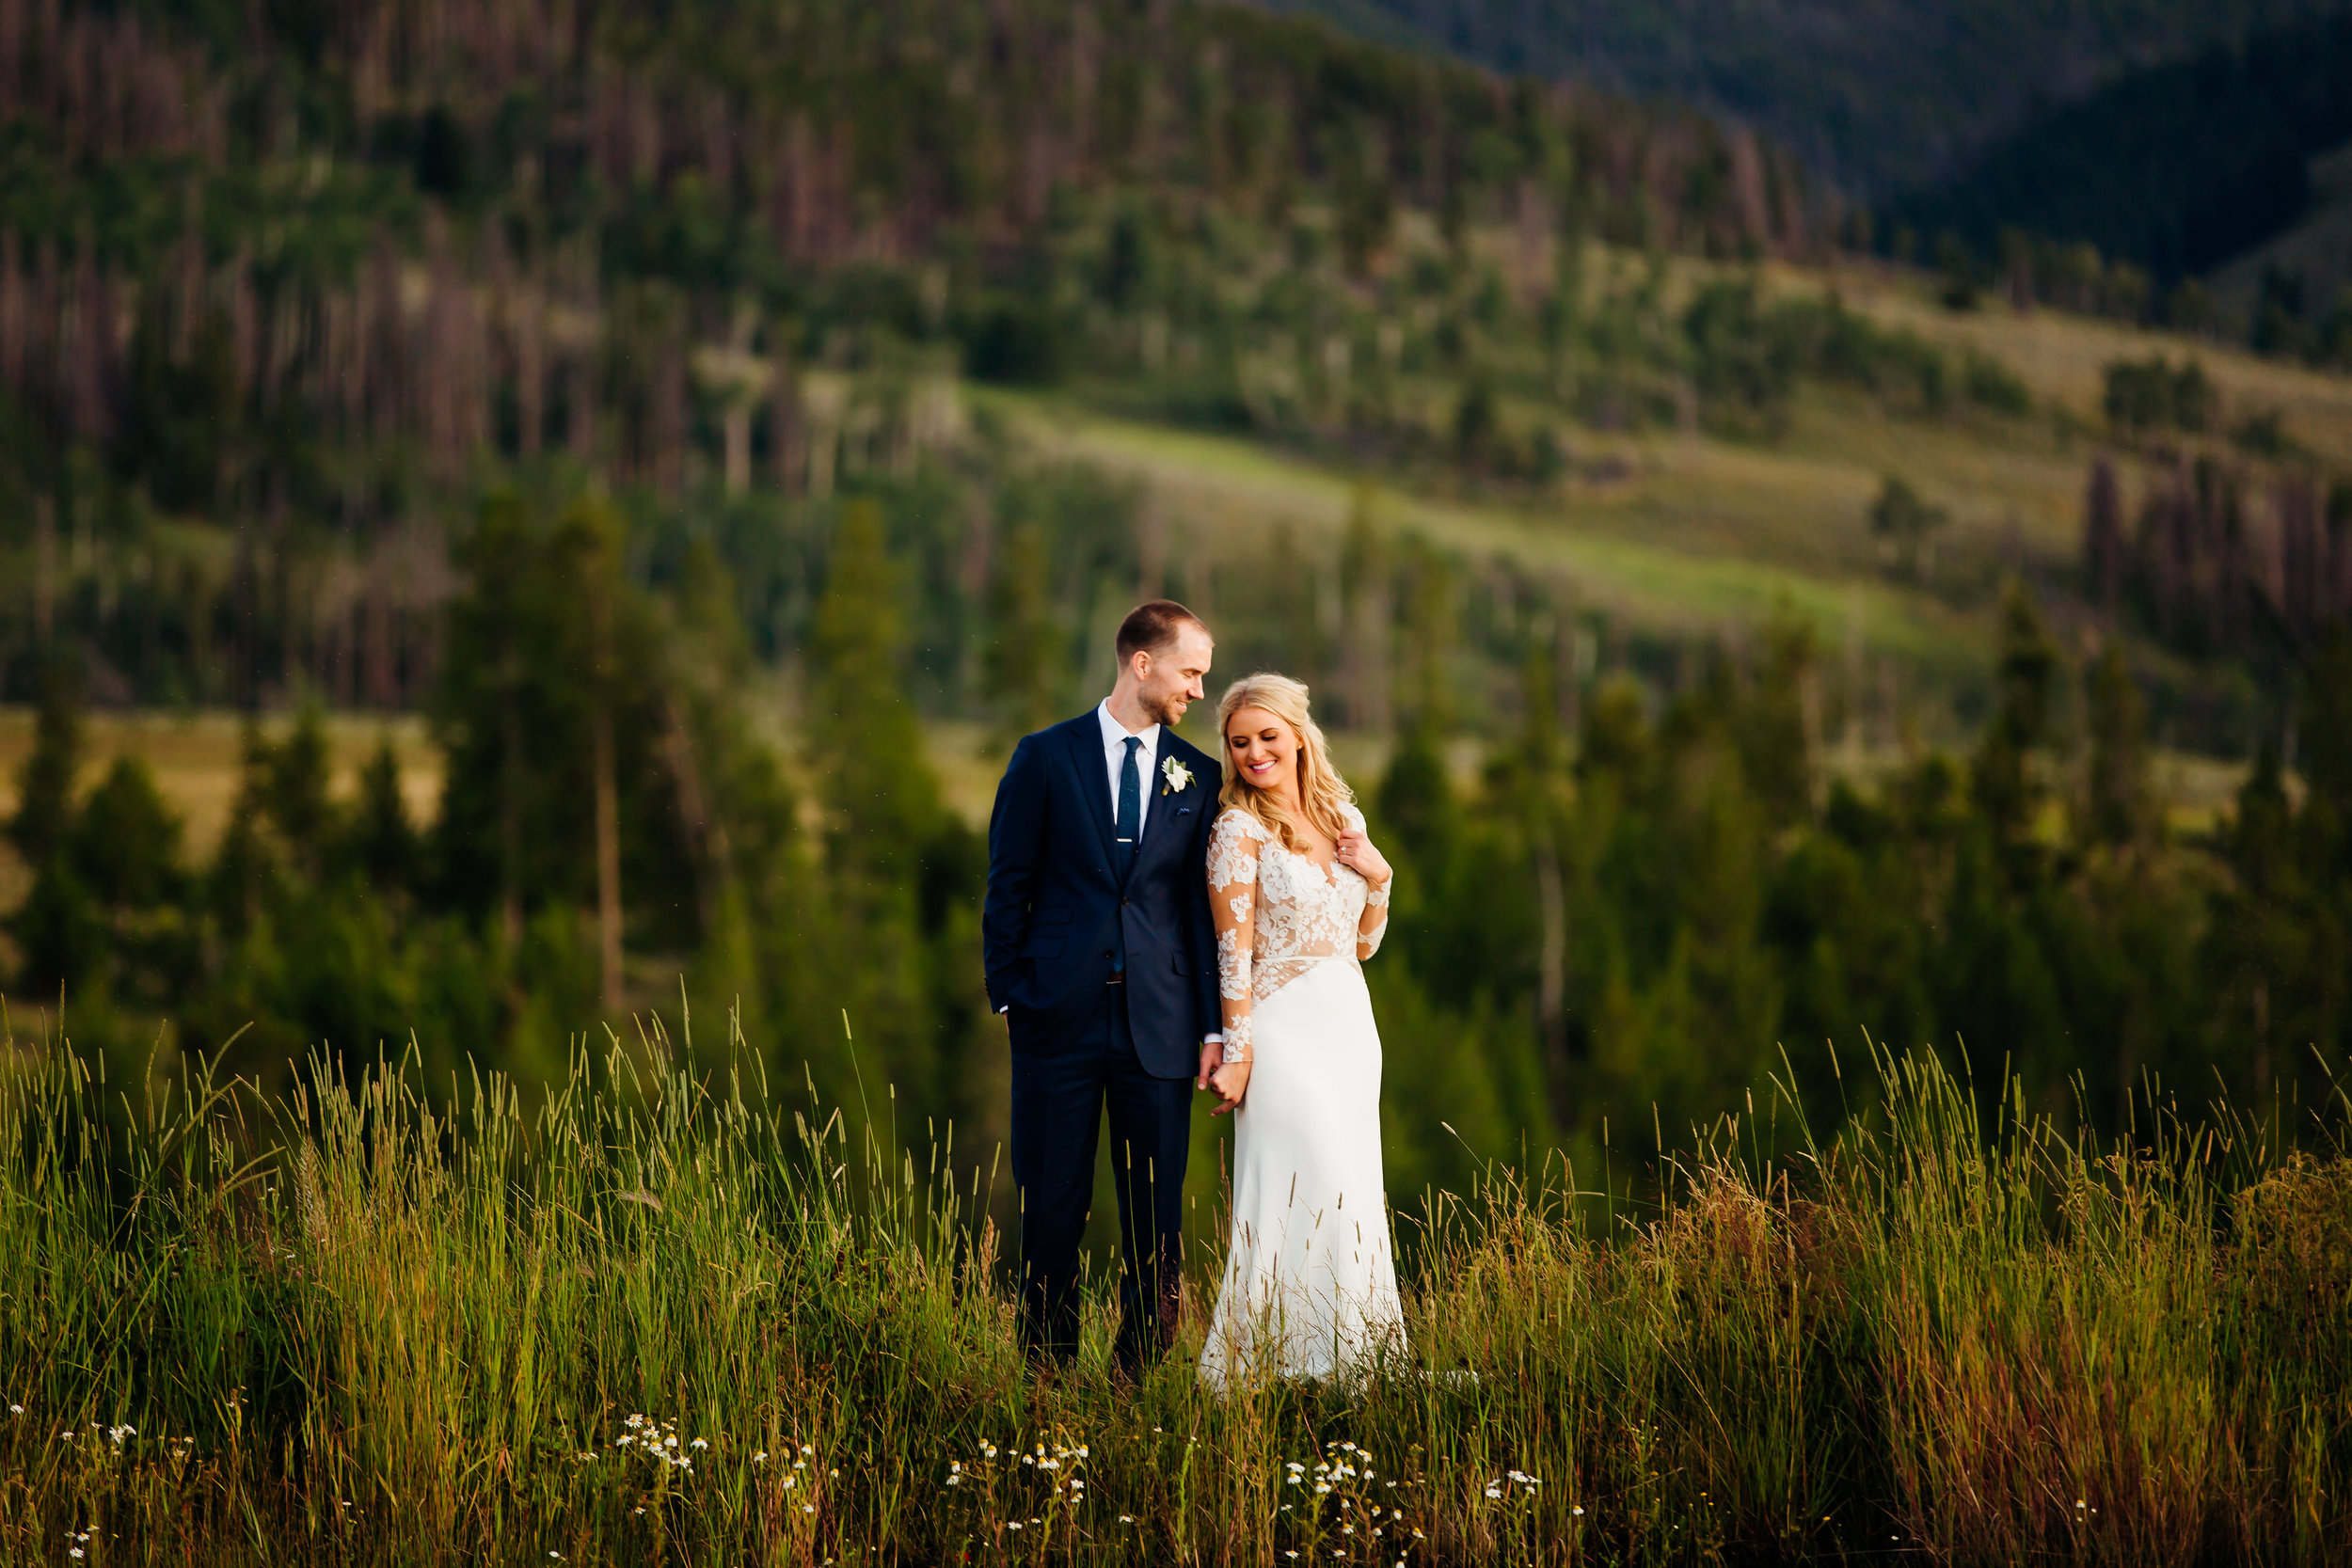 Evelyn_Andrew_BrideGroomPortraits-96.jpg